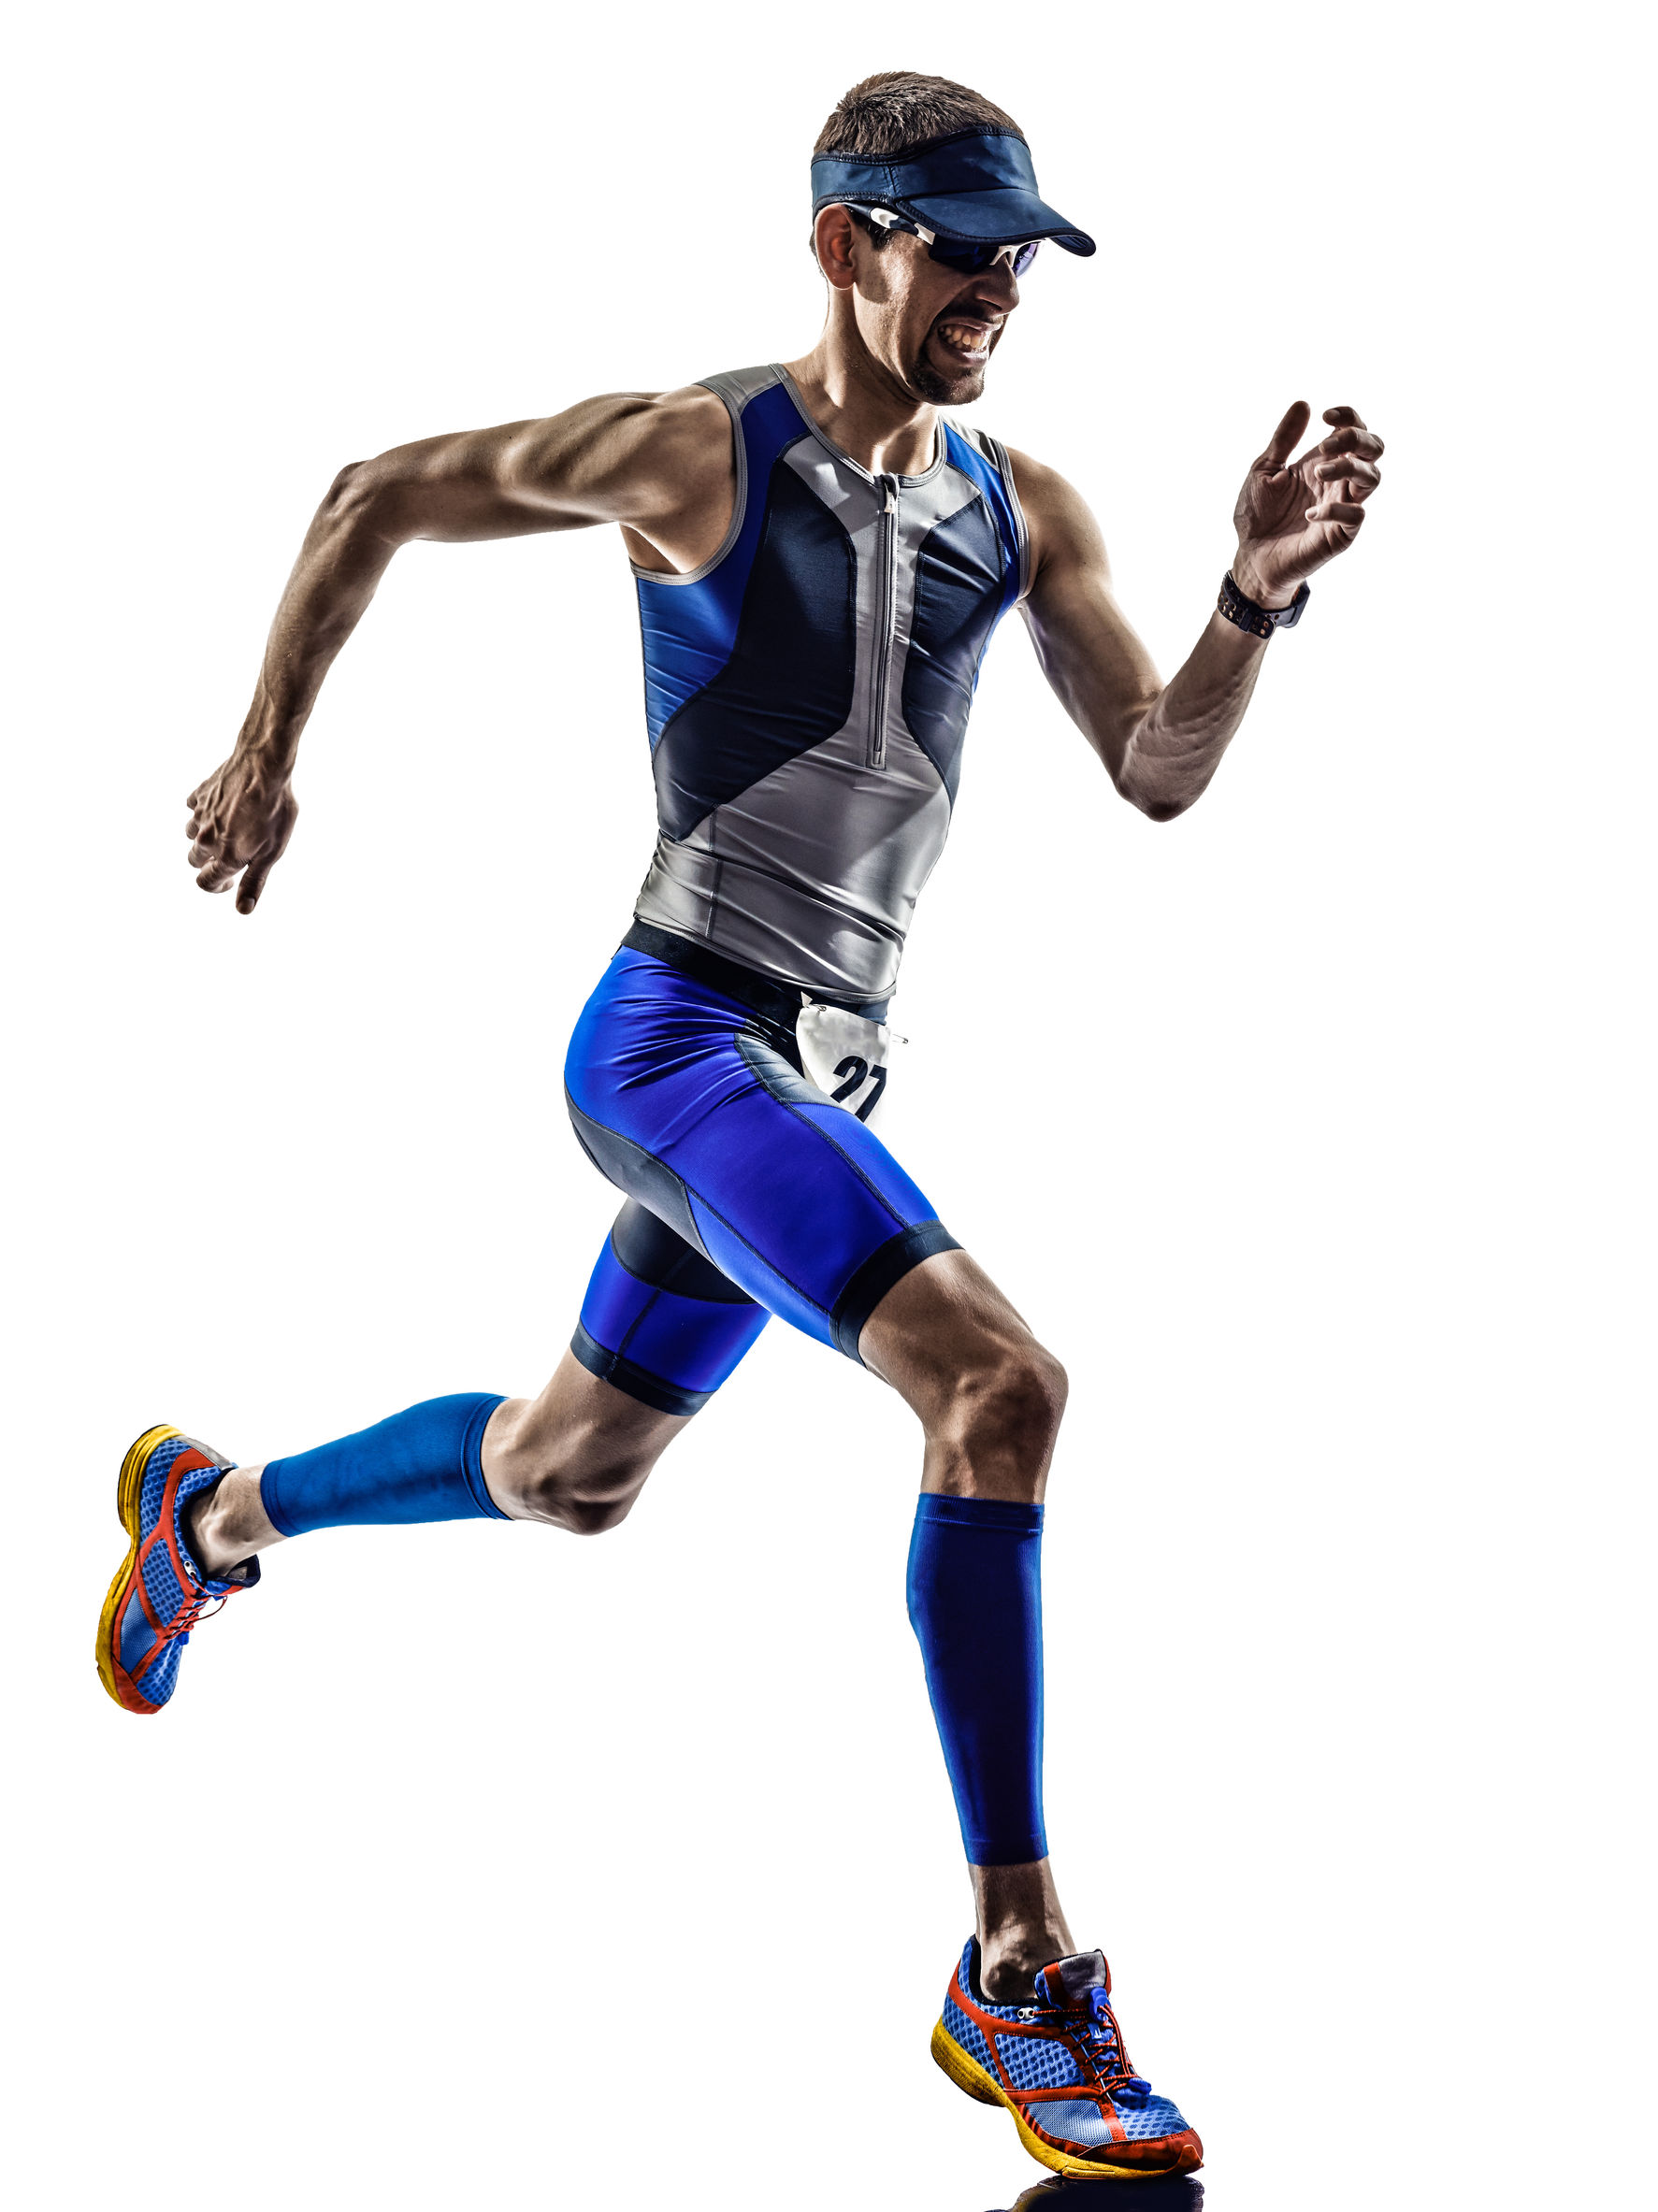 stem cells active infinite wellness regenerative medicine has been the preferred medical care for years helping professional athletes avoid invasive surgeries that included significant rehab